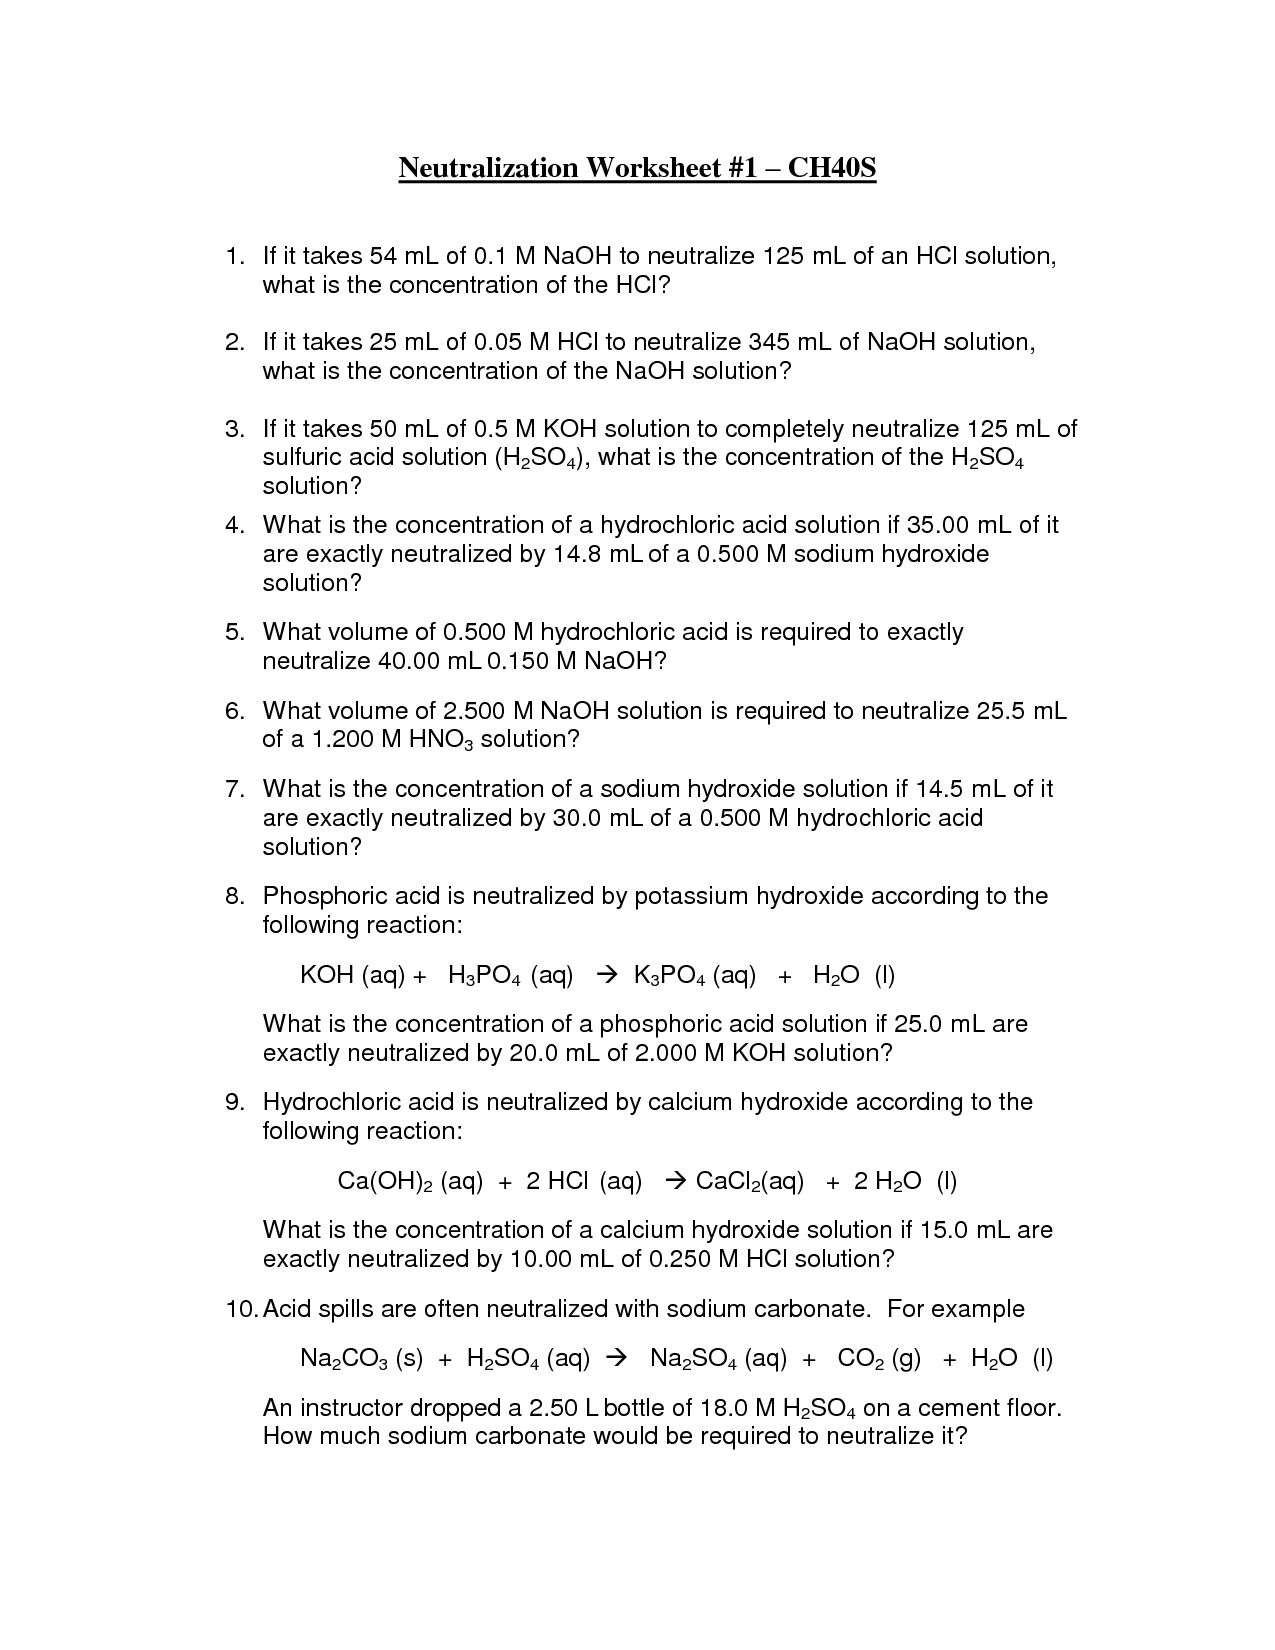 11 Best Images of Acid And Base Reactions Worksheet  Acids and Bases Worksheet Answers, Acids